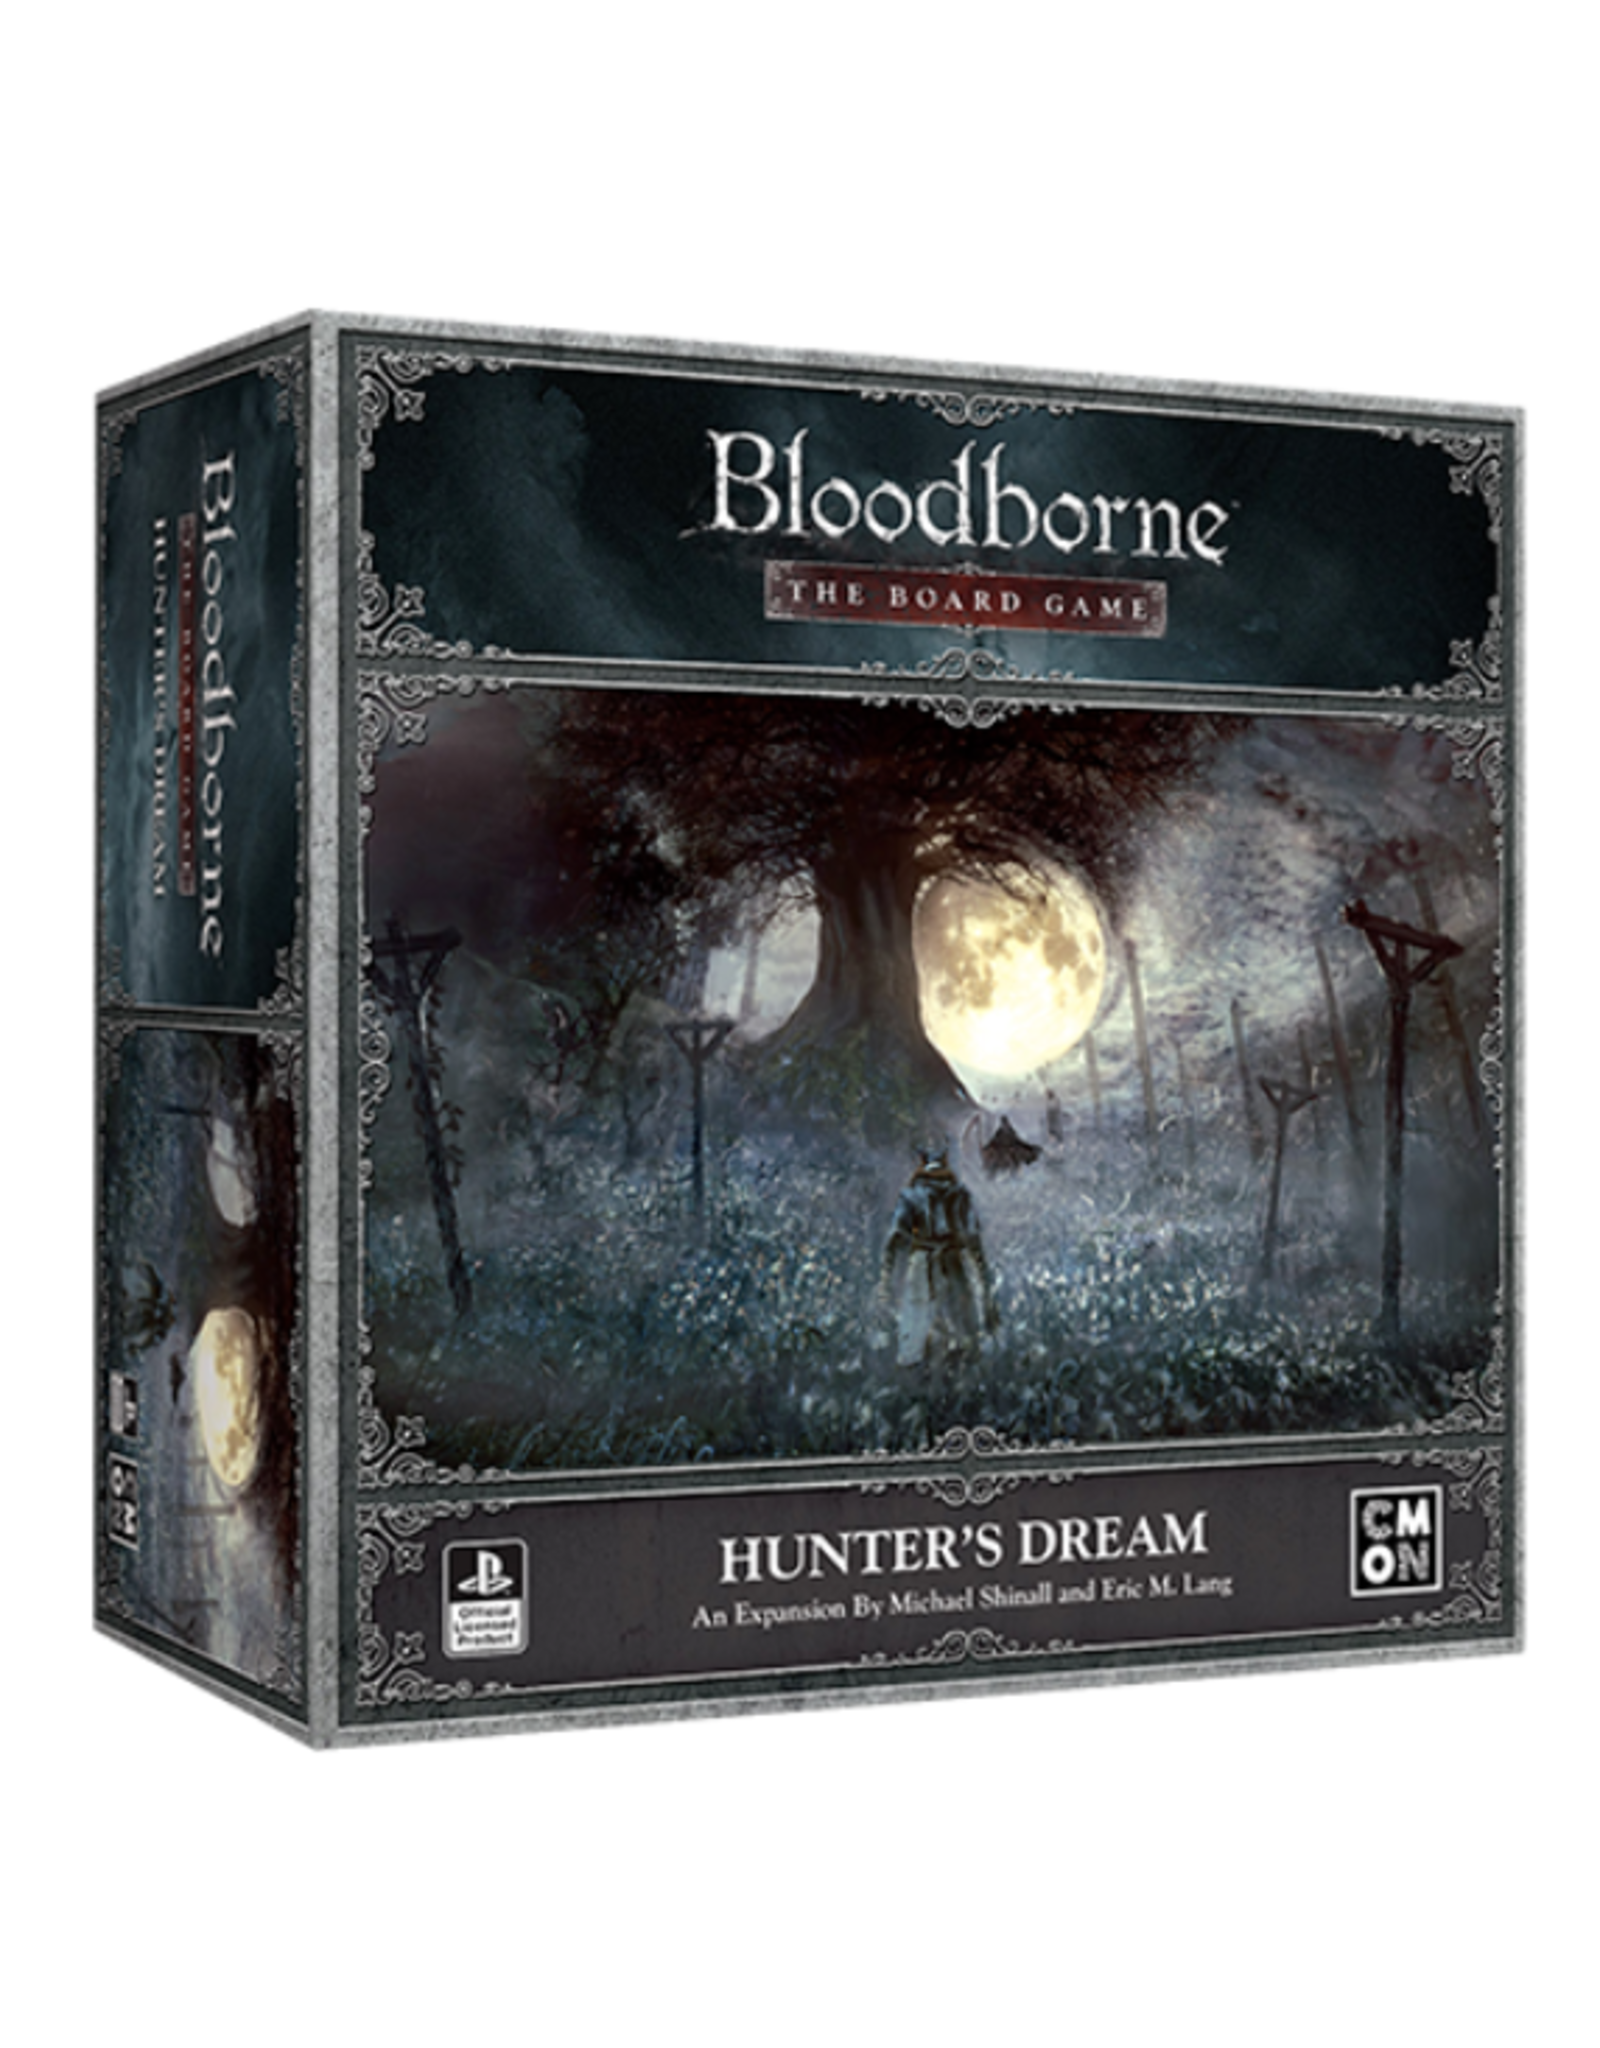 Cool Mini or Not Bloodborne: Hunter's Dream Expansion